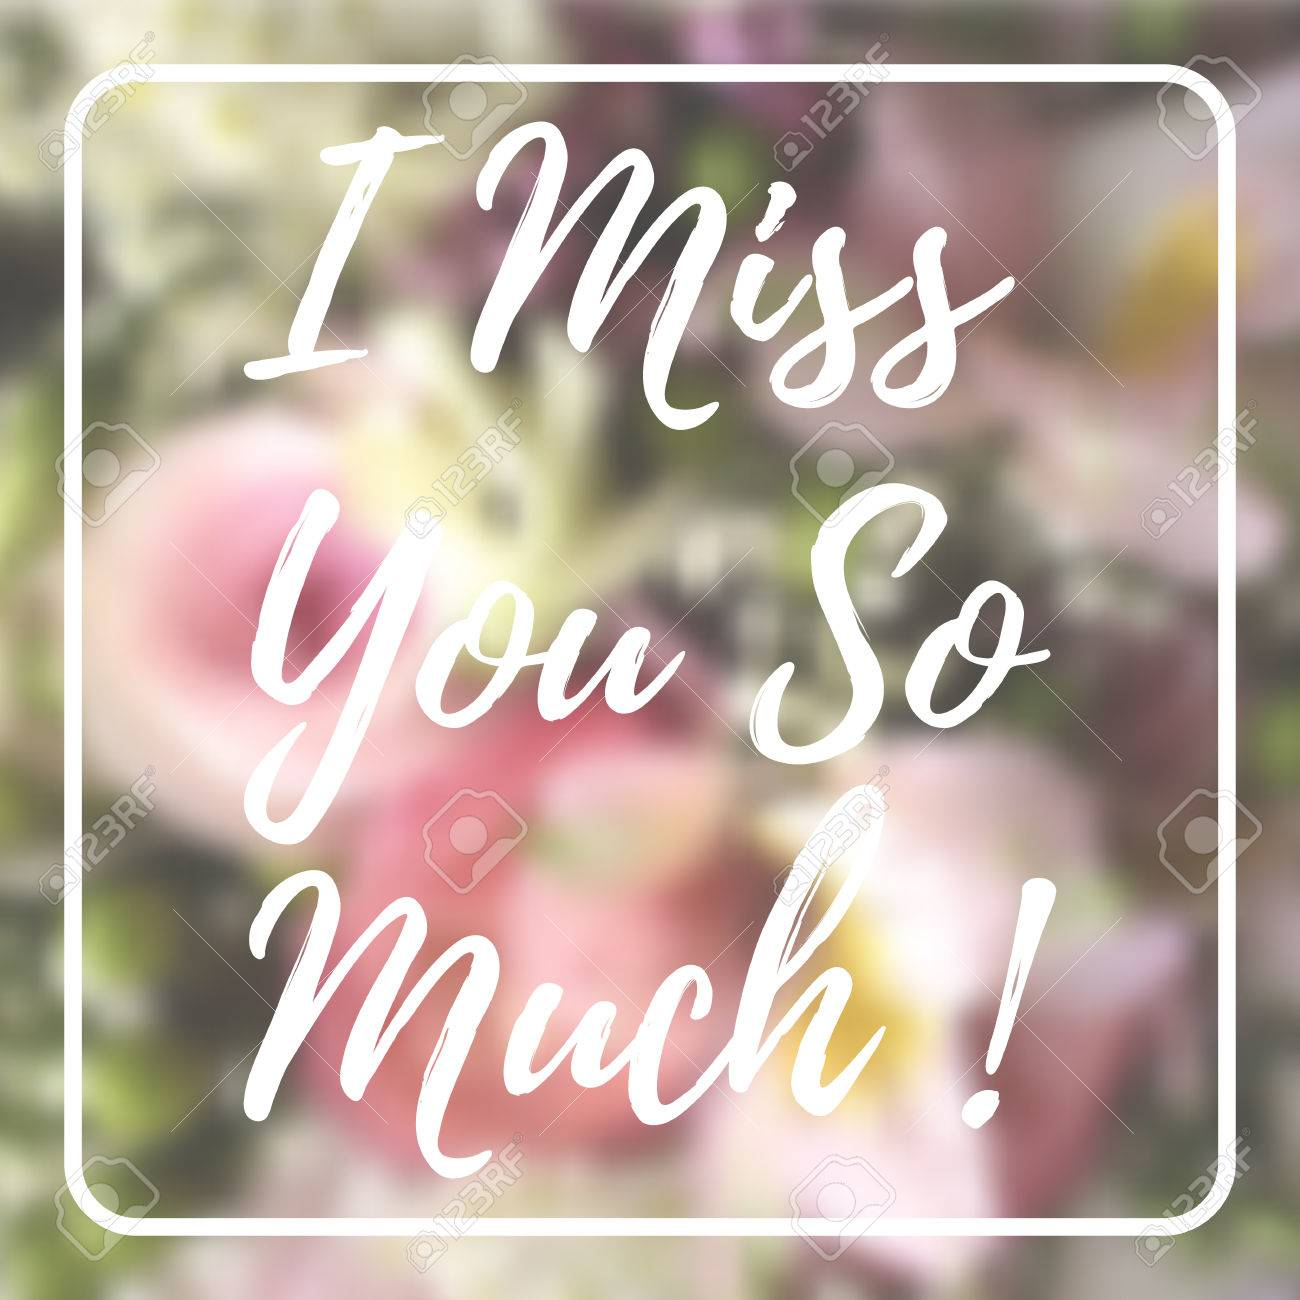 I Miss You So Much Card On Blurred Flowers Background Royalty Free